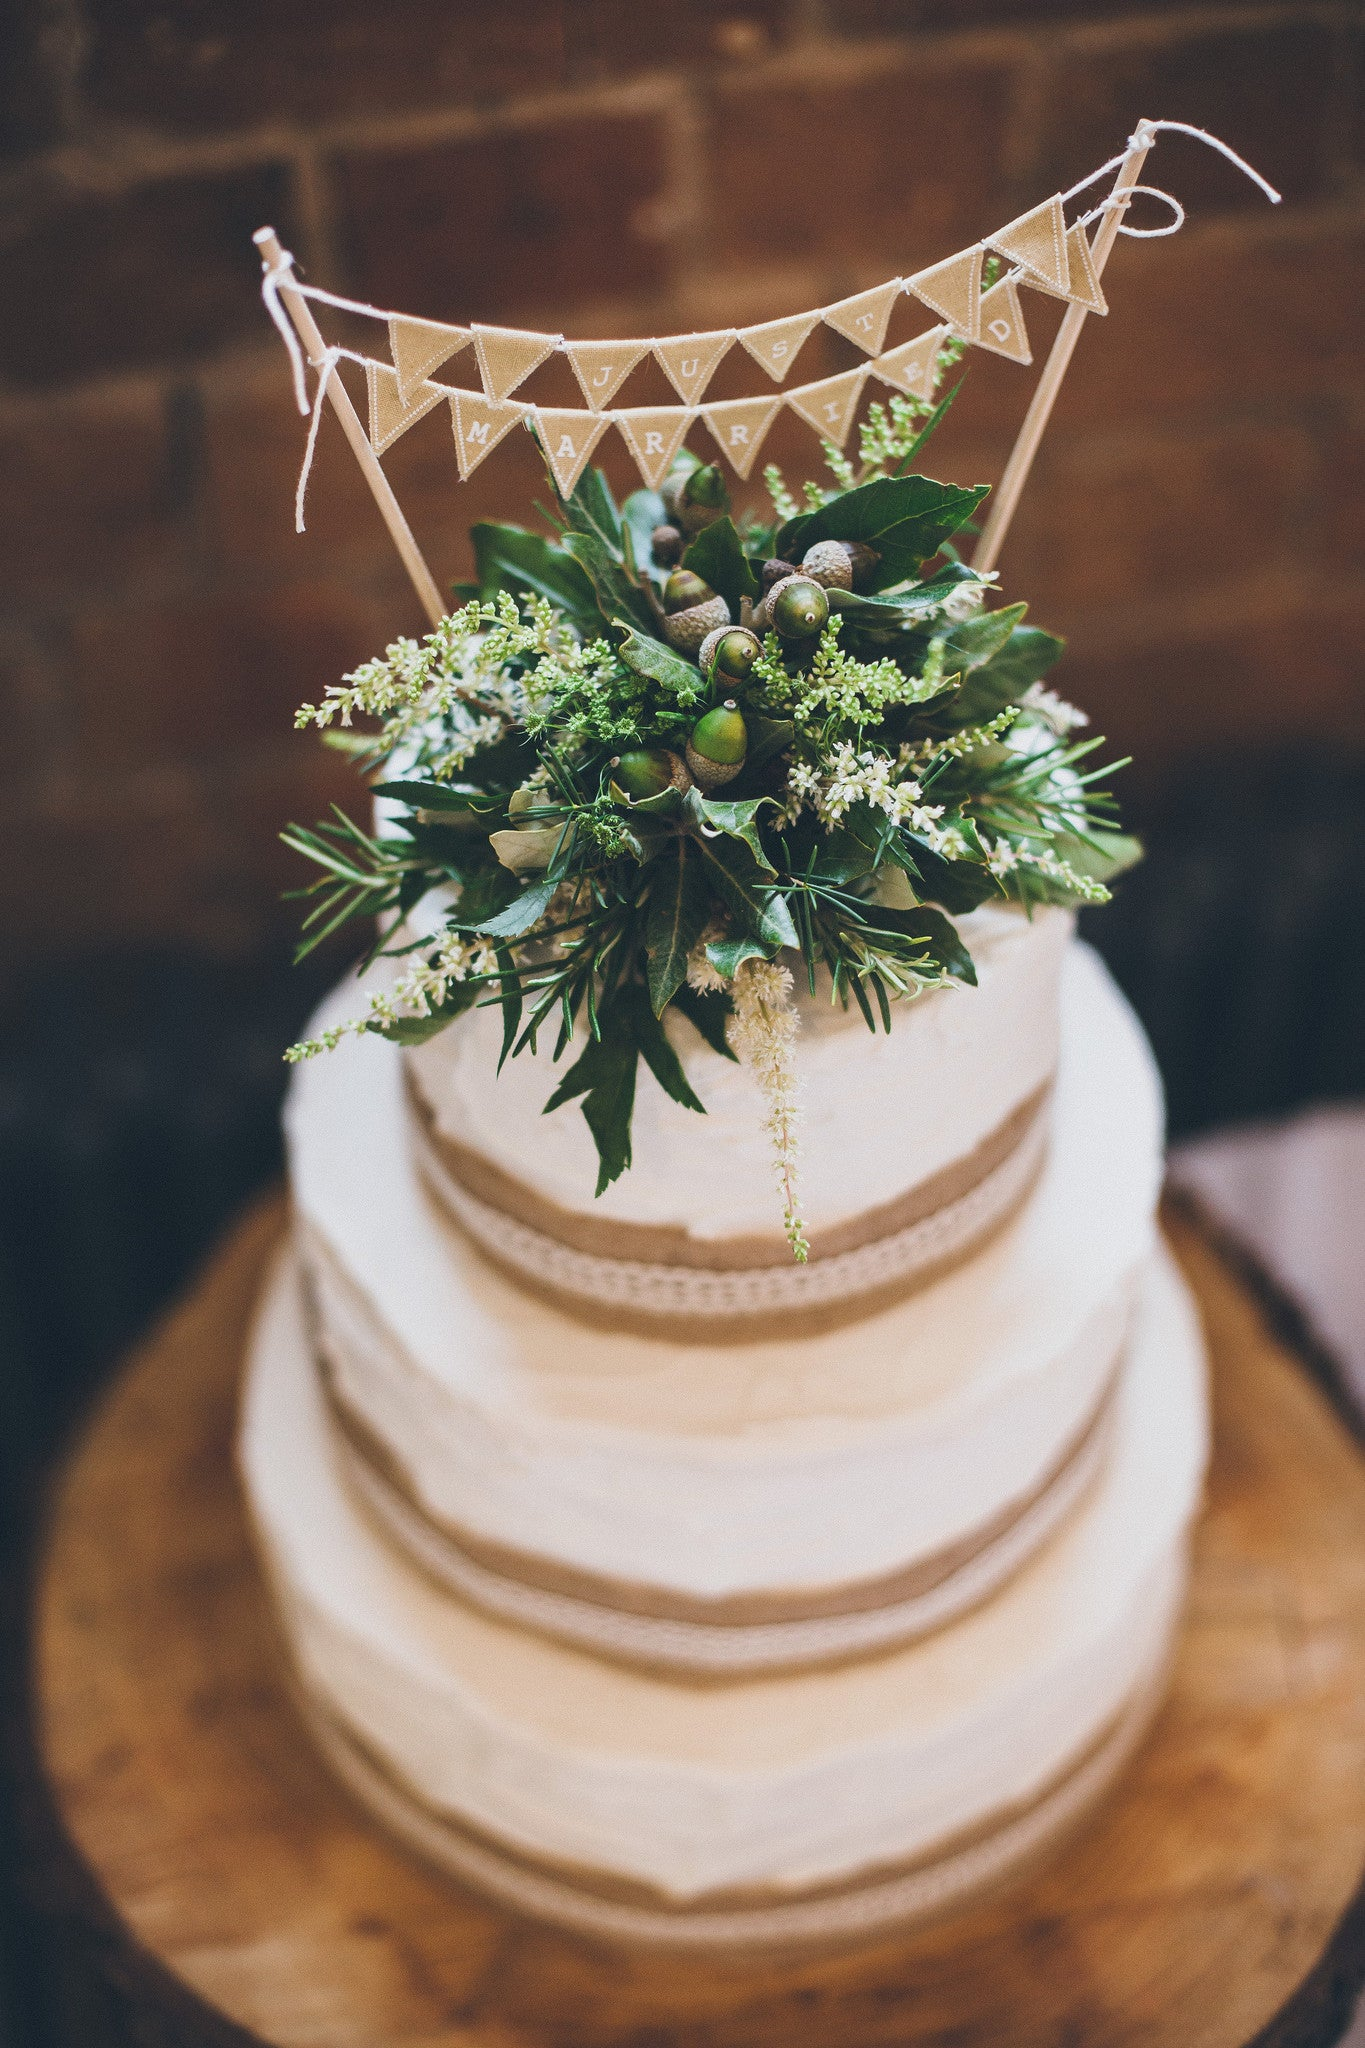 Top of a wedding cake floral design in greens and whites for a country themed wedding.